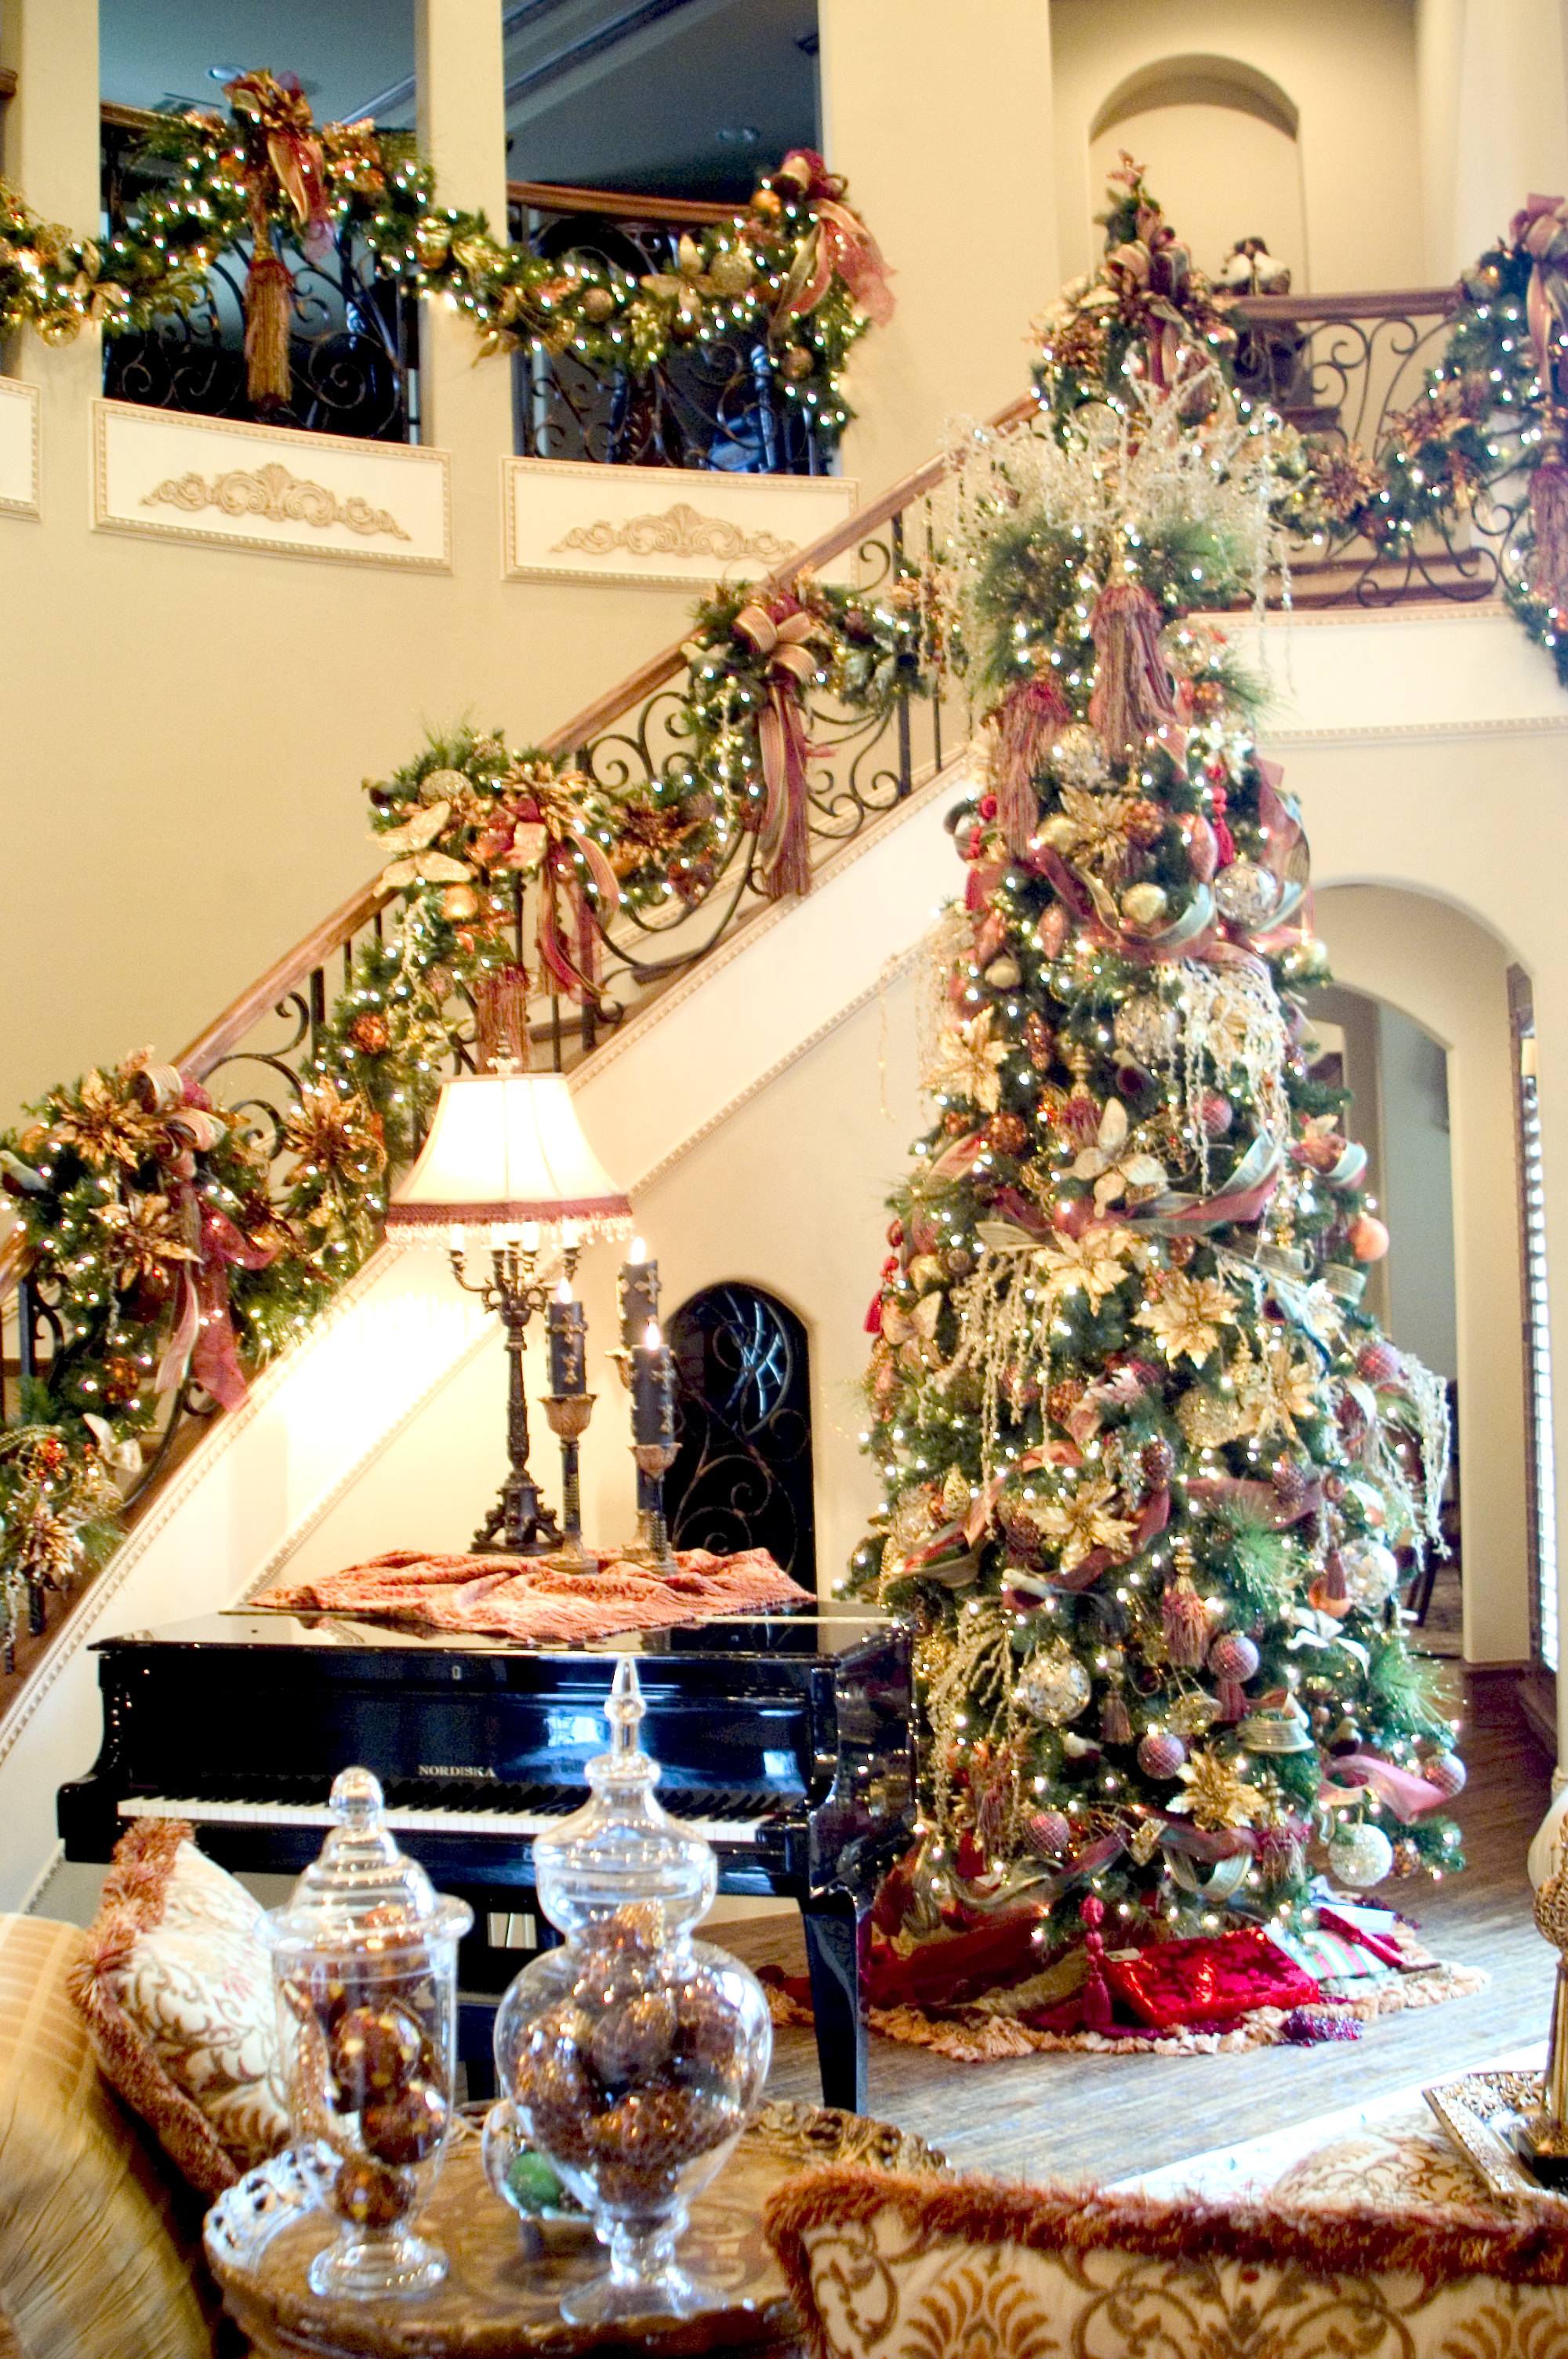 On Style Today 2020 09 13 Captivating Christmas Decorating Home Interior Design Here